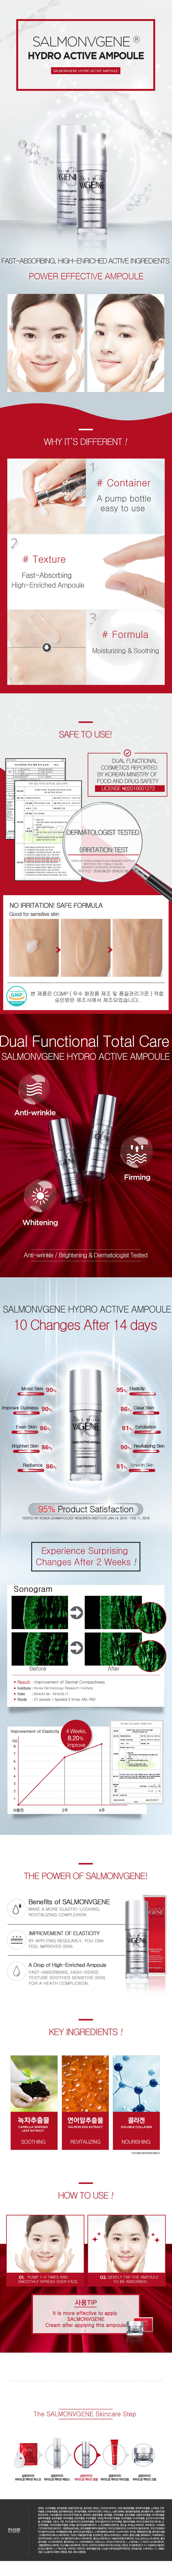 SalmonVgene Hydro Active Ampoule